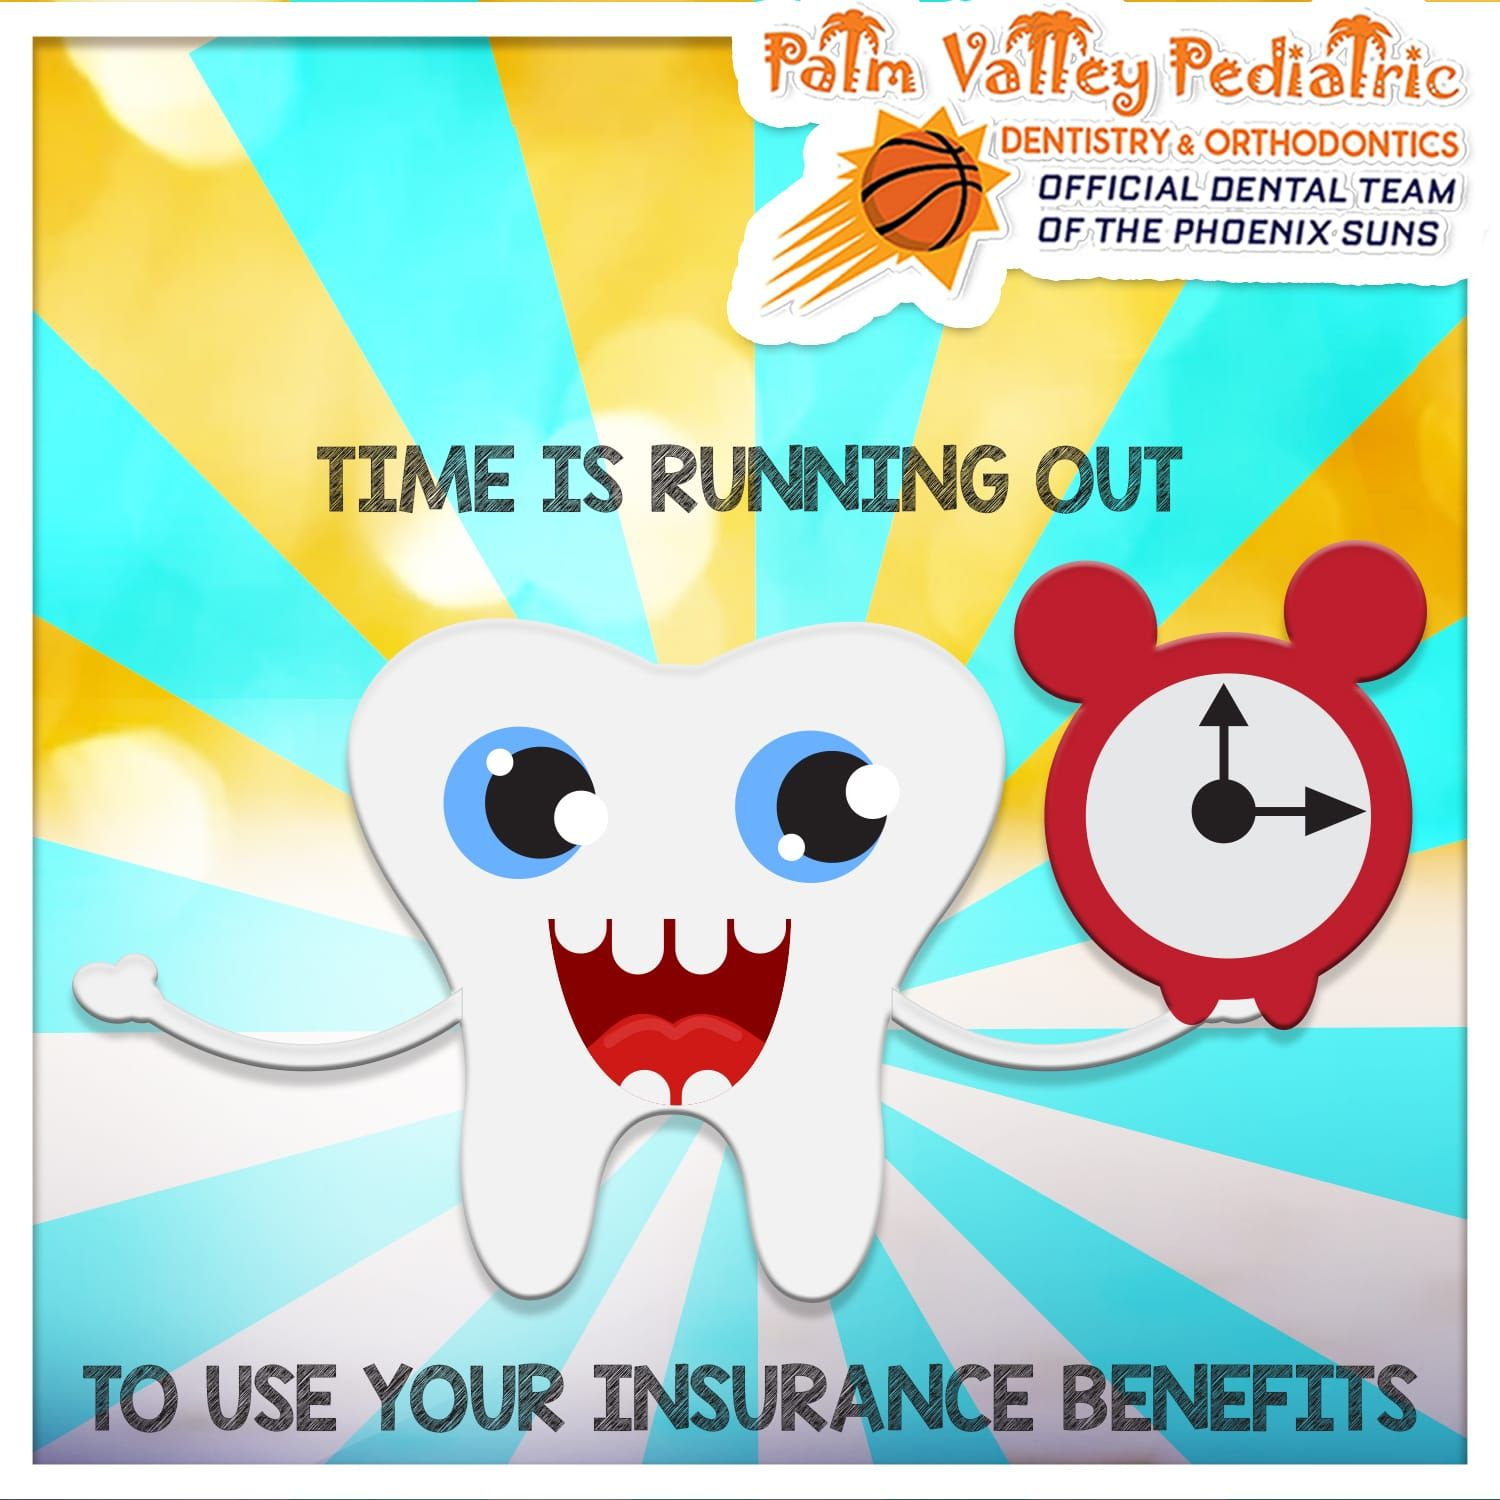 Palm Valley Pediatric Dentistry & Orthodontics Official